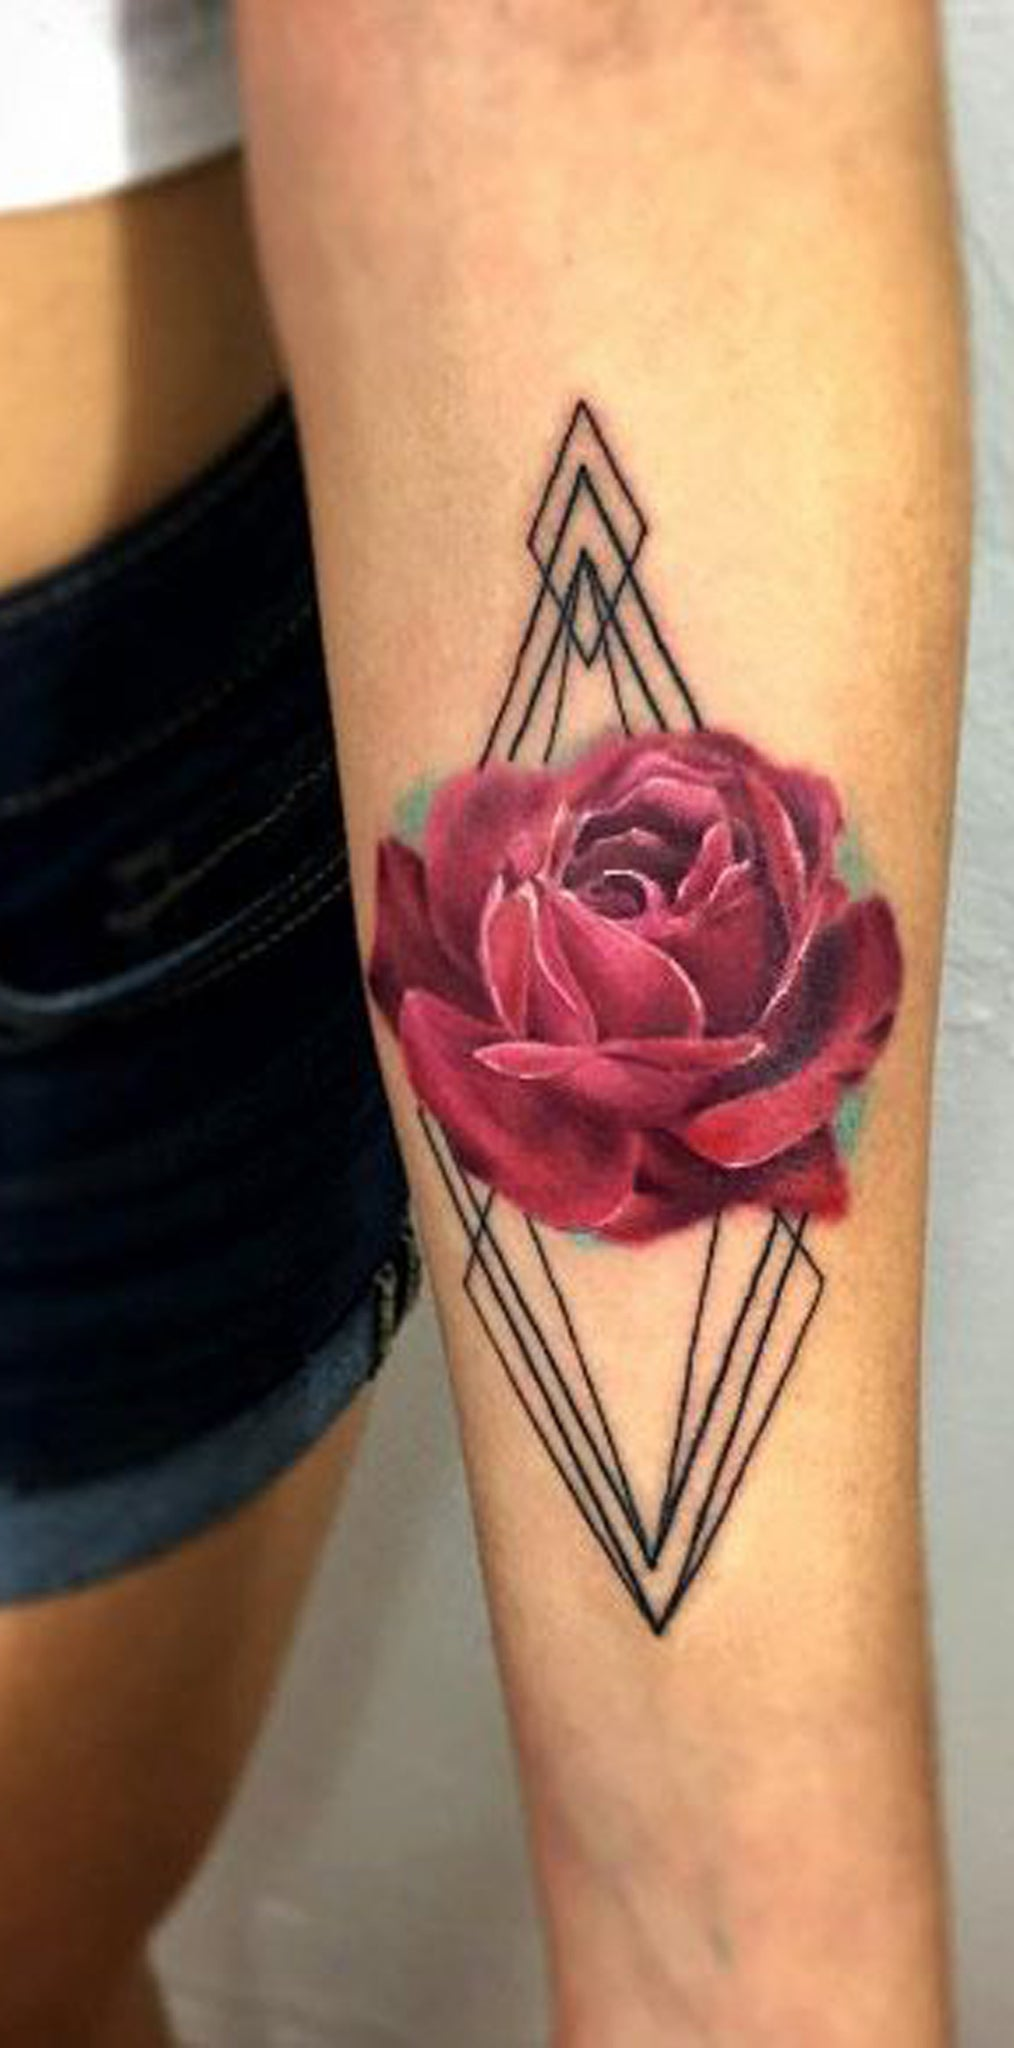 Geometric Watercolor Rose Forearm Tattoo Ideas for Women - Diamond Colorful Pink Red Floral Flower Arm Sleeve Tat -  ideas geométricas del tatuaje del brazo color de rosa para las mujeres - www.MyBodiArt.com